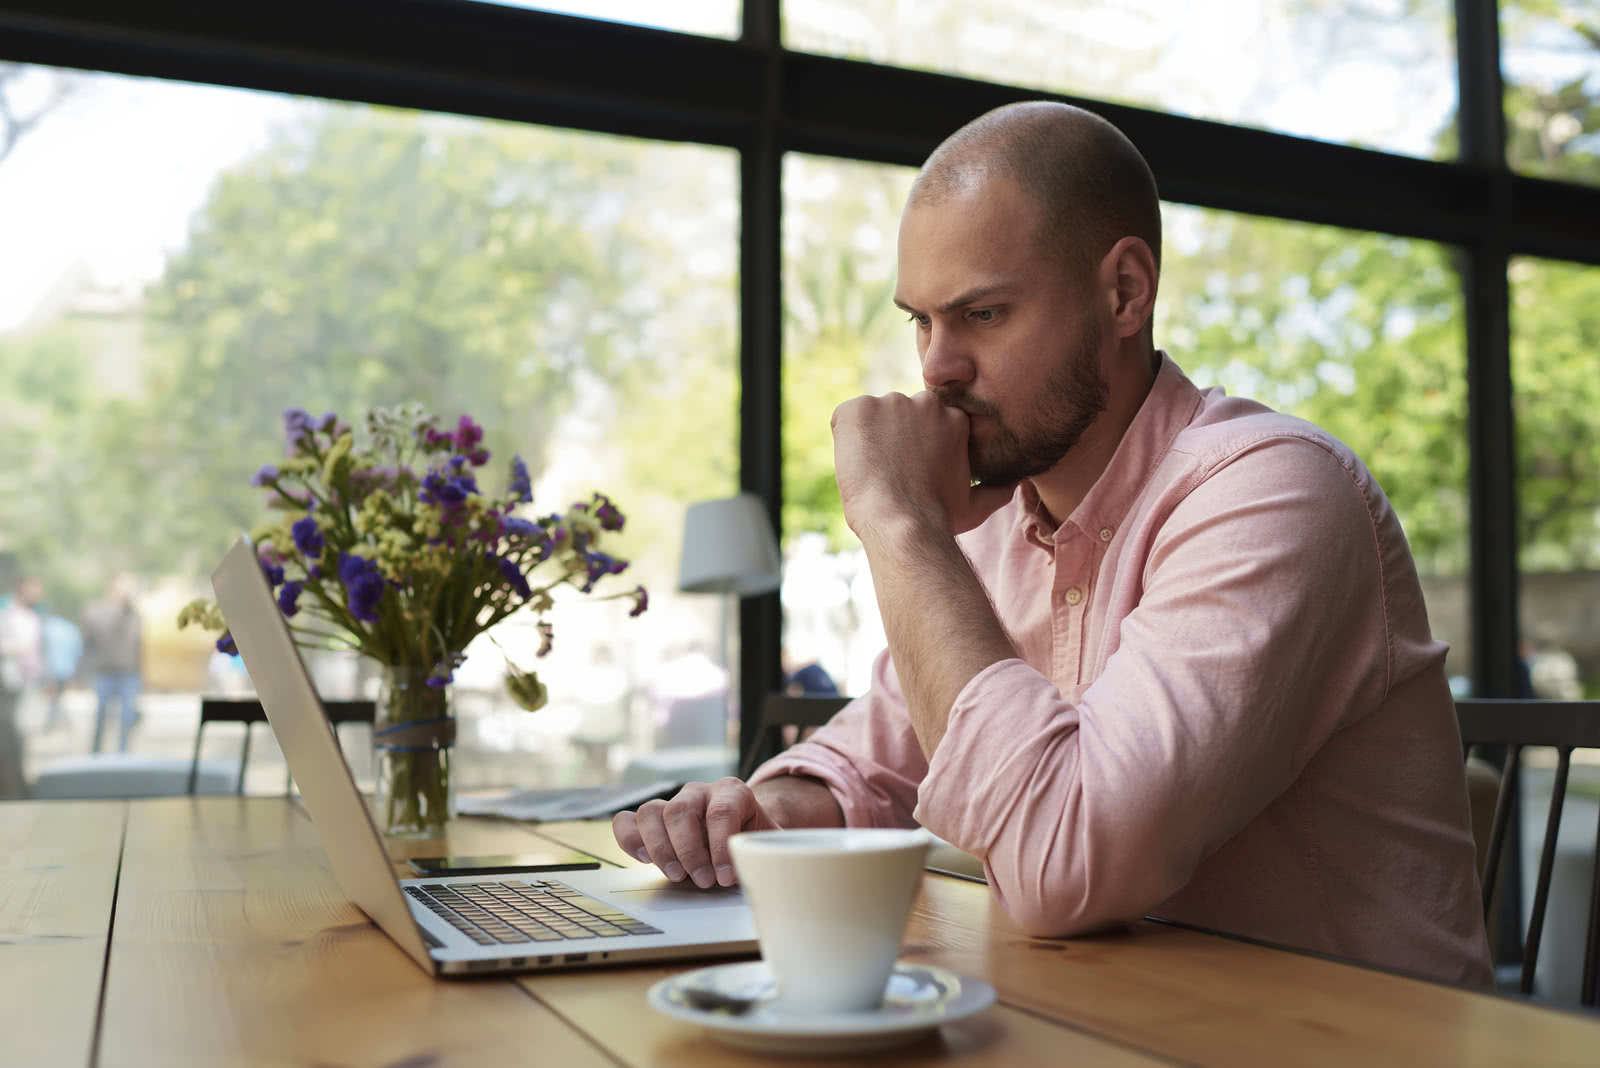 Business owner reviewing financial metrics for small businesses on laptop